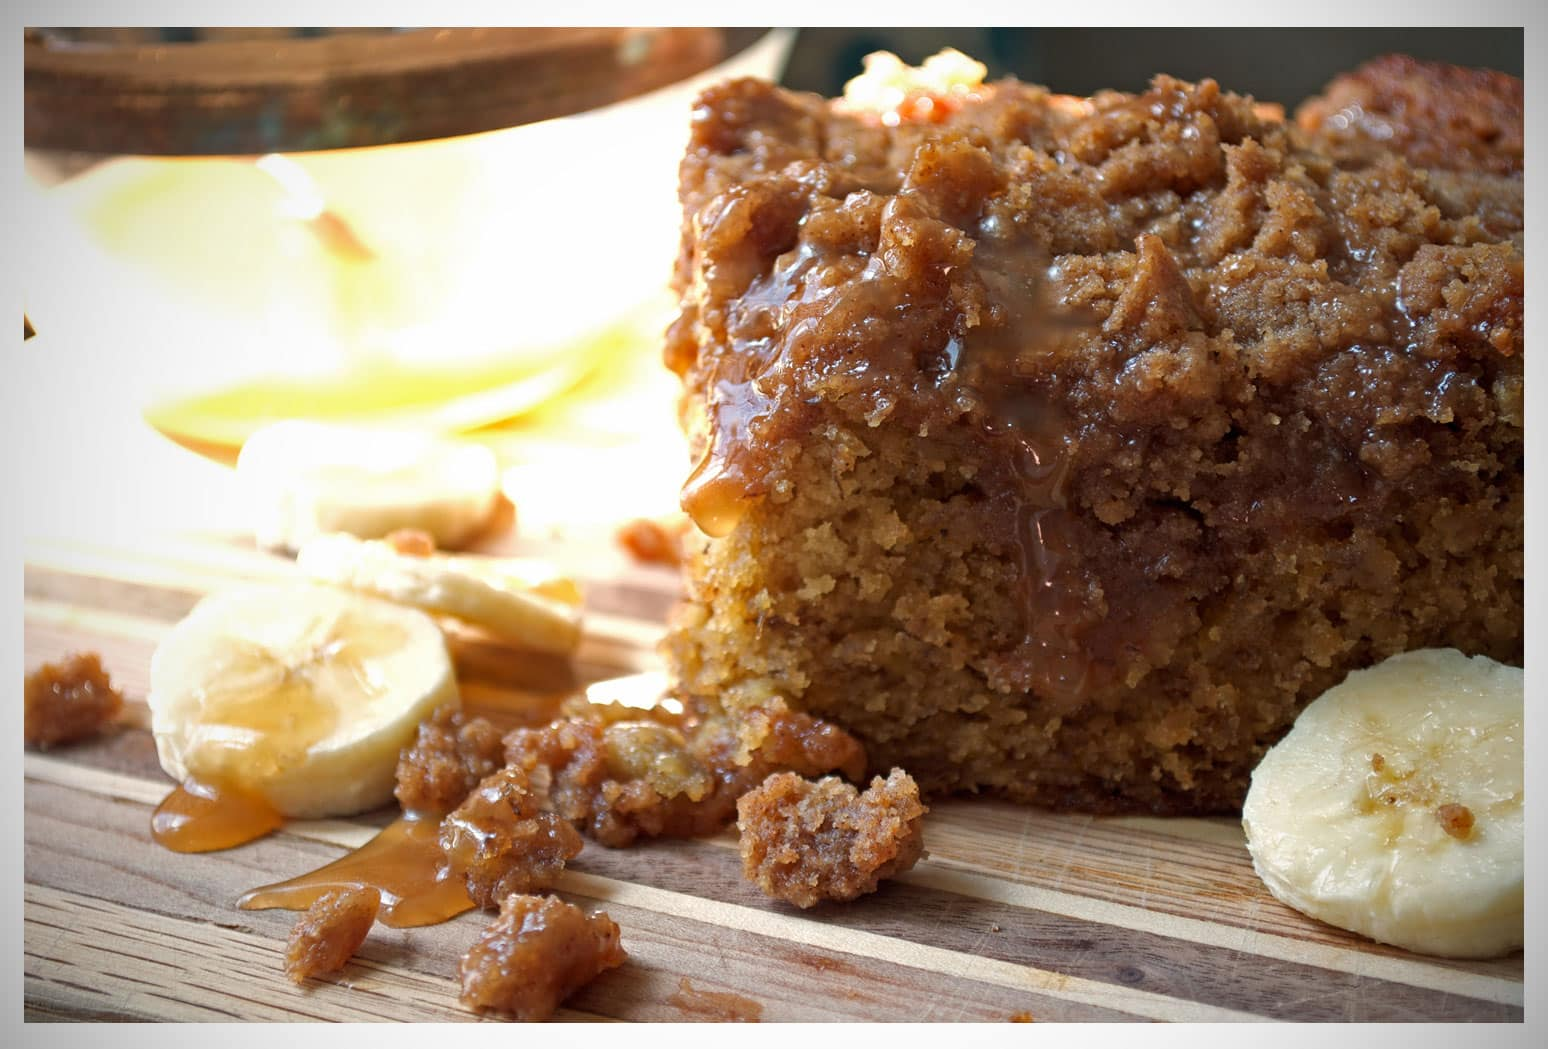 ... Caramel Rum sauce and Crumb topping are simple to make and come